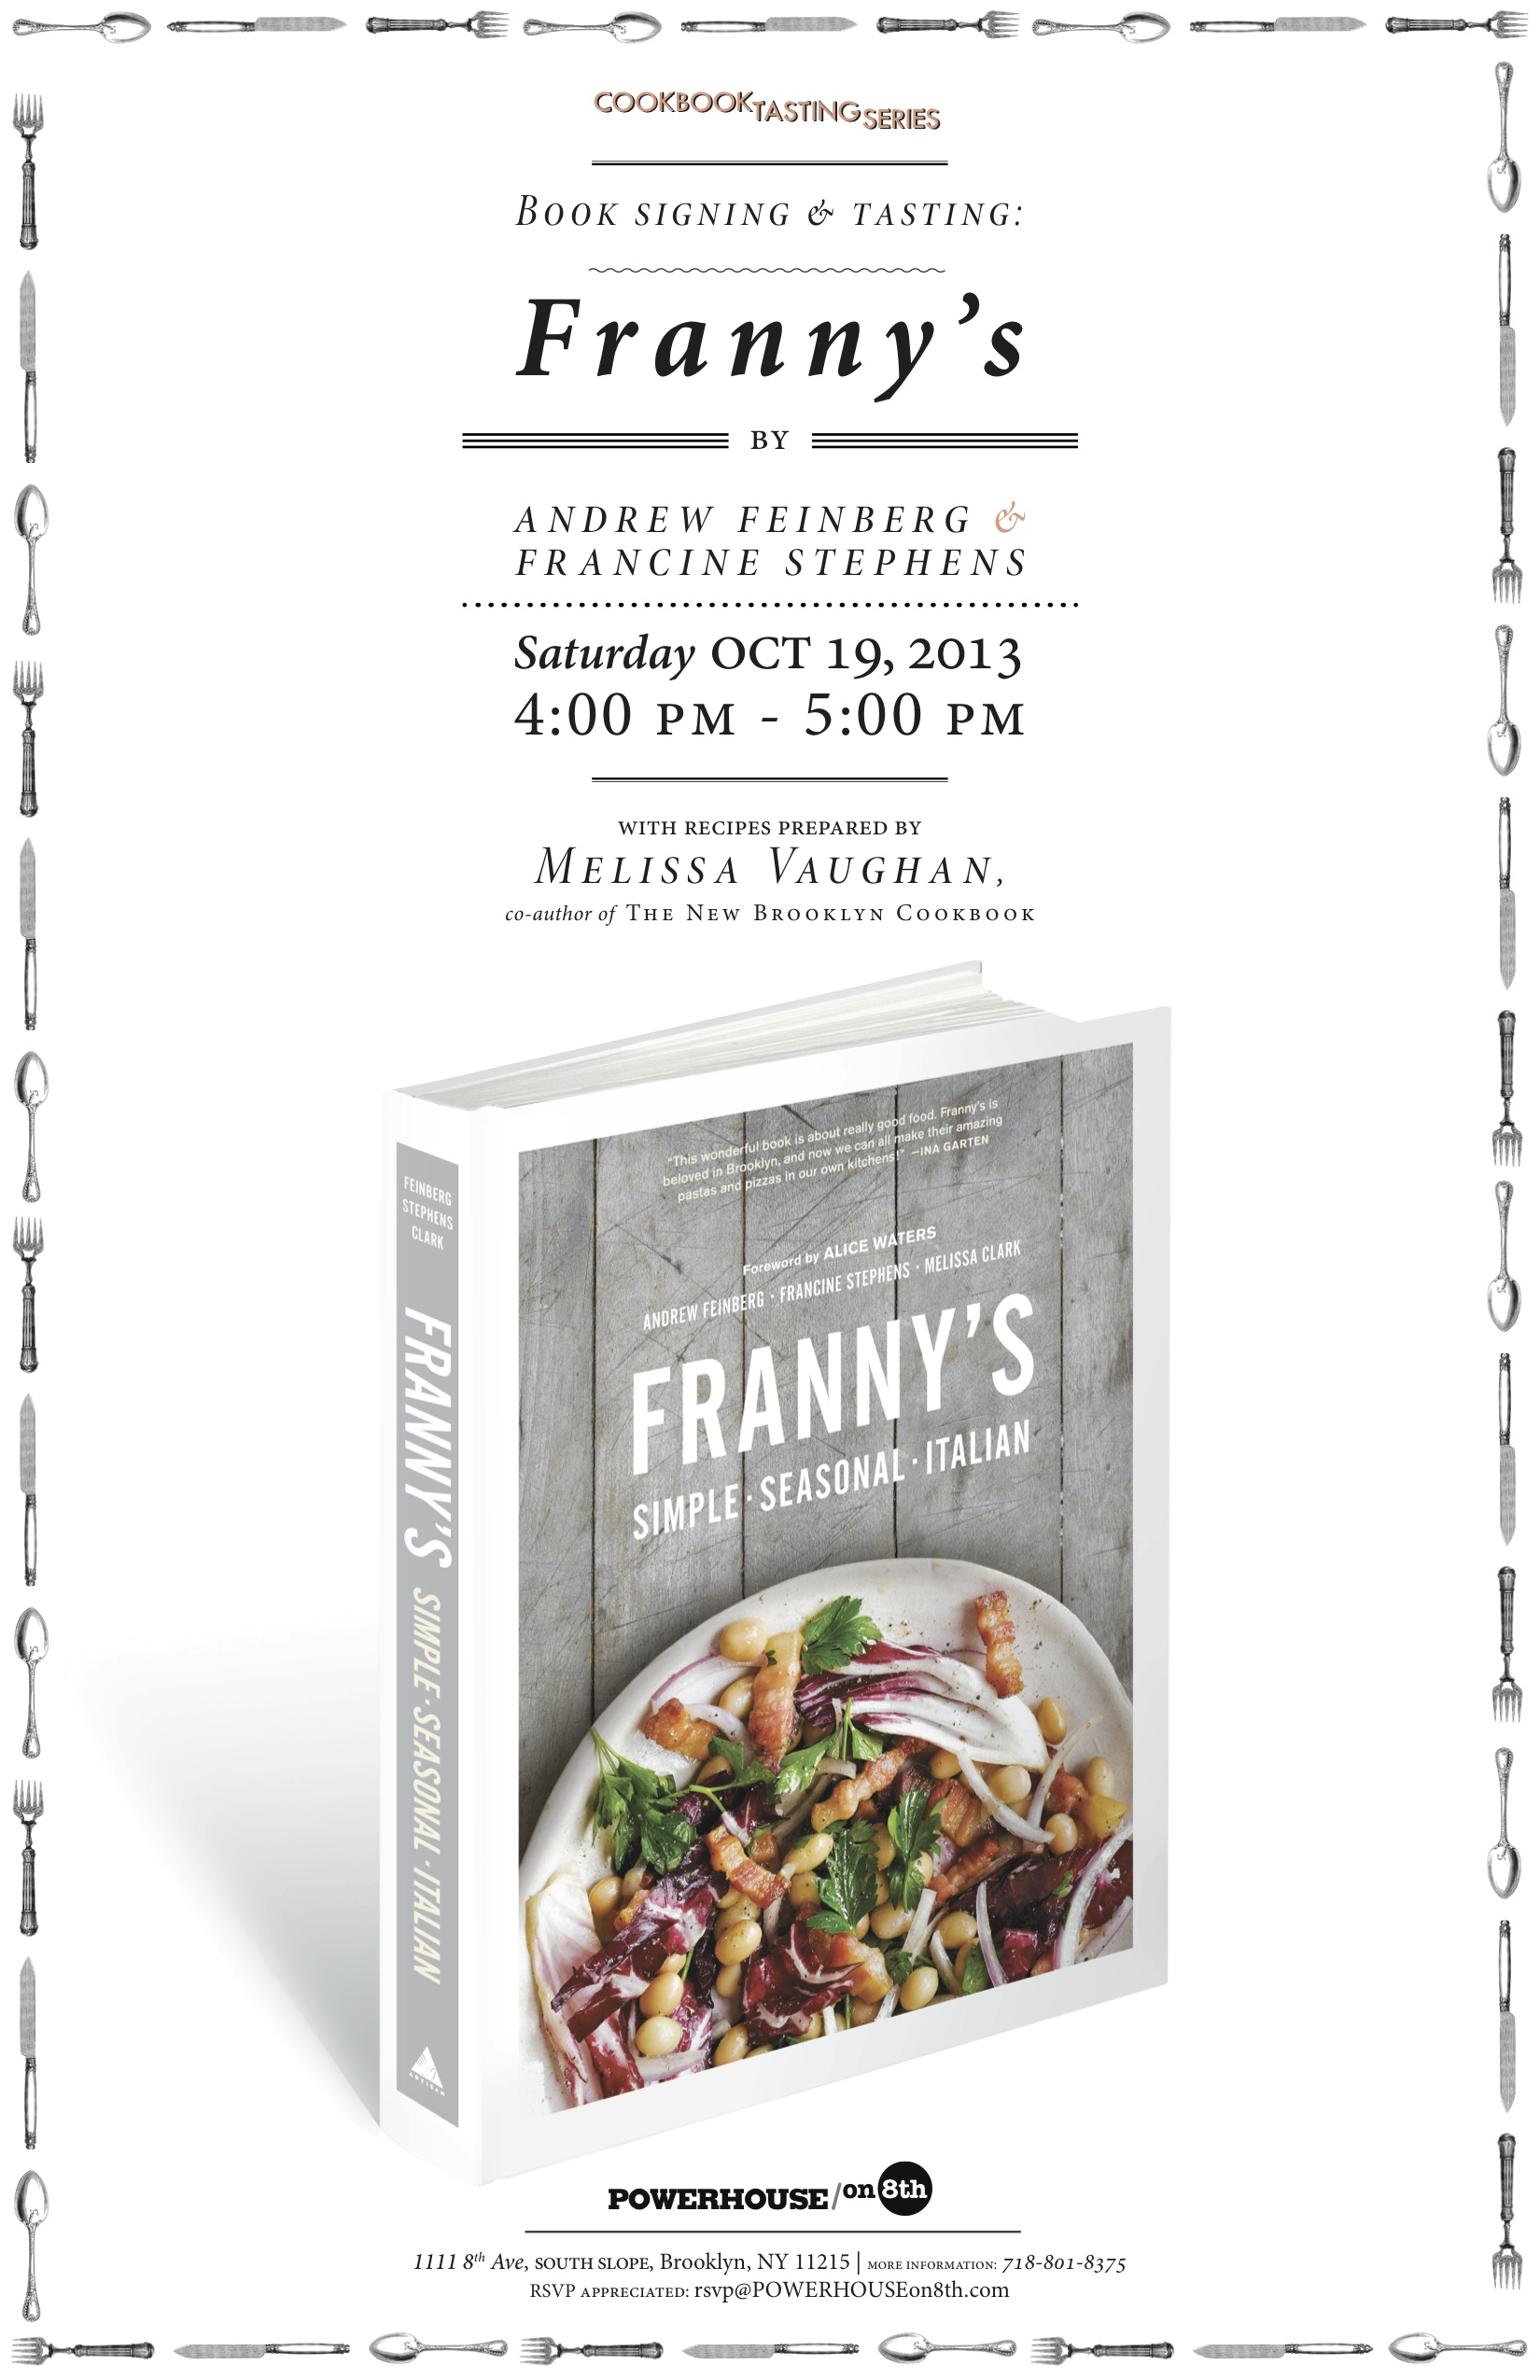 Cookbook Tasting Series with Melissa Vaughan: Franny's by Andrew Feinberg & Francine Stephens